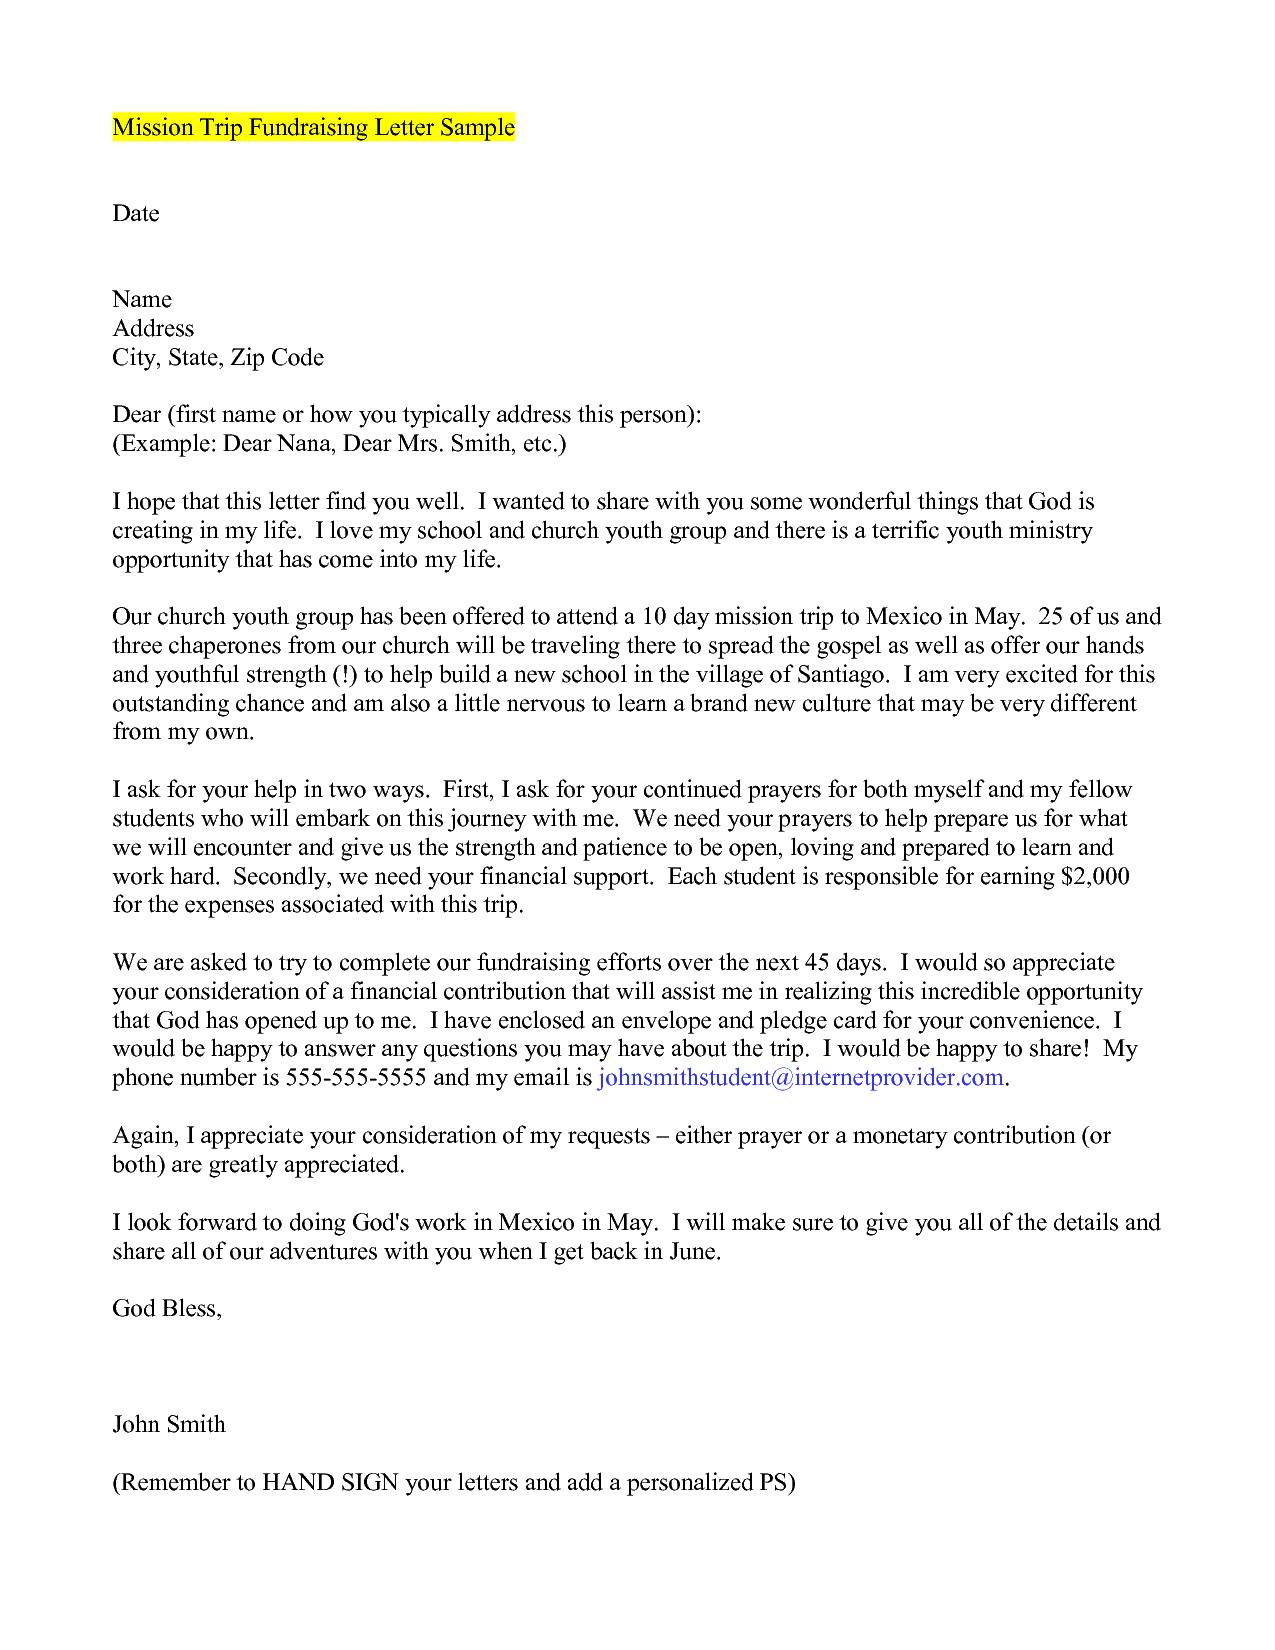 Mission Trip Fundraising Support Sample Letter